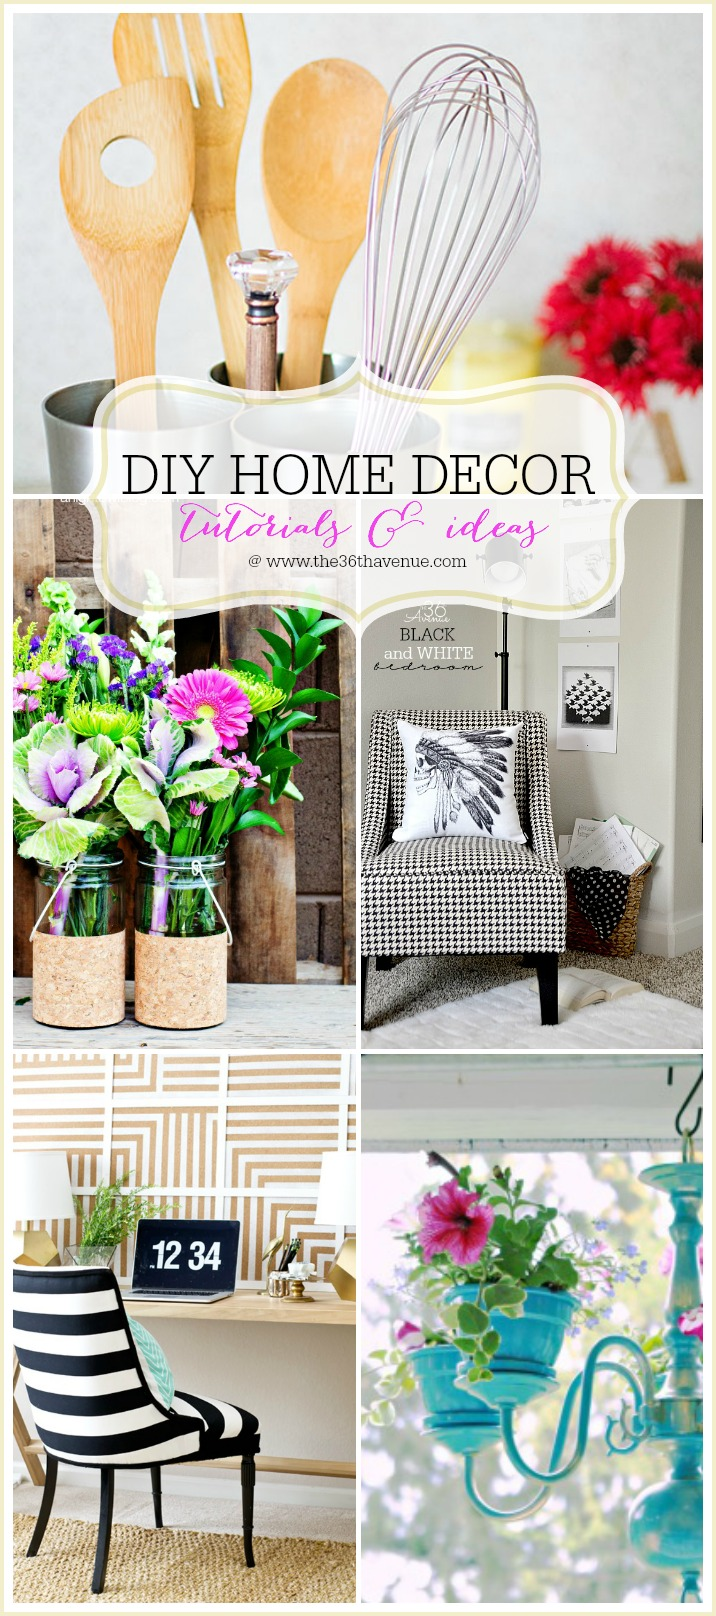 diy decor projects easy fun decorating tutorials interior simple these check crafts the36thavenue decoration 36th avenue craft homes decorate must